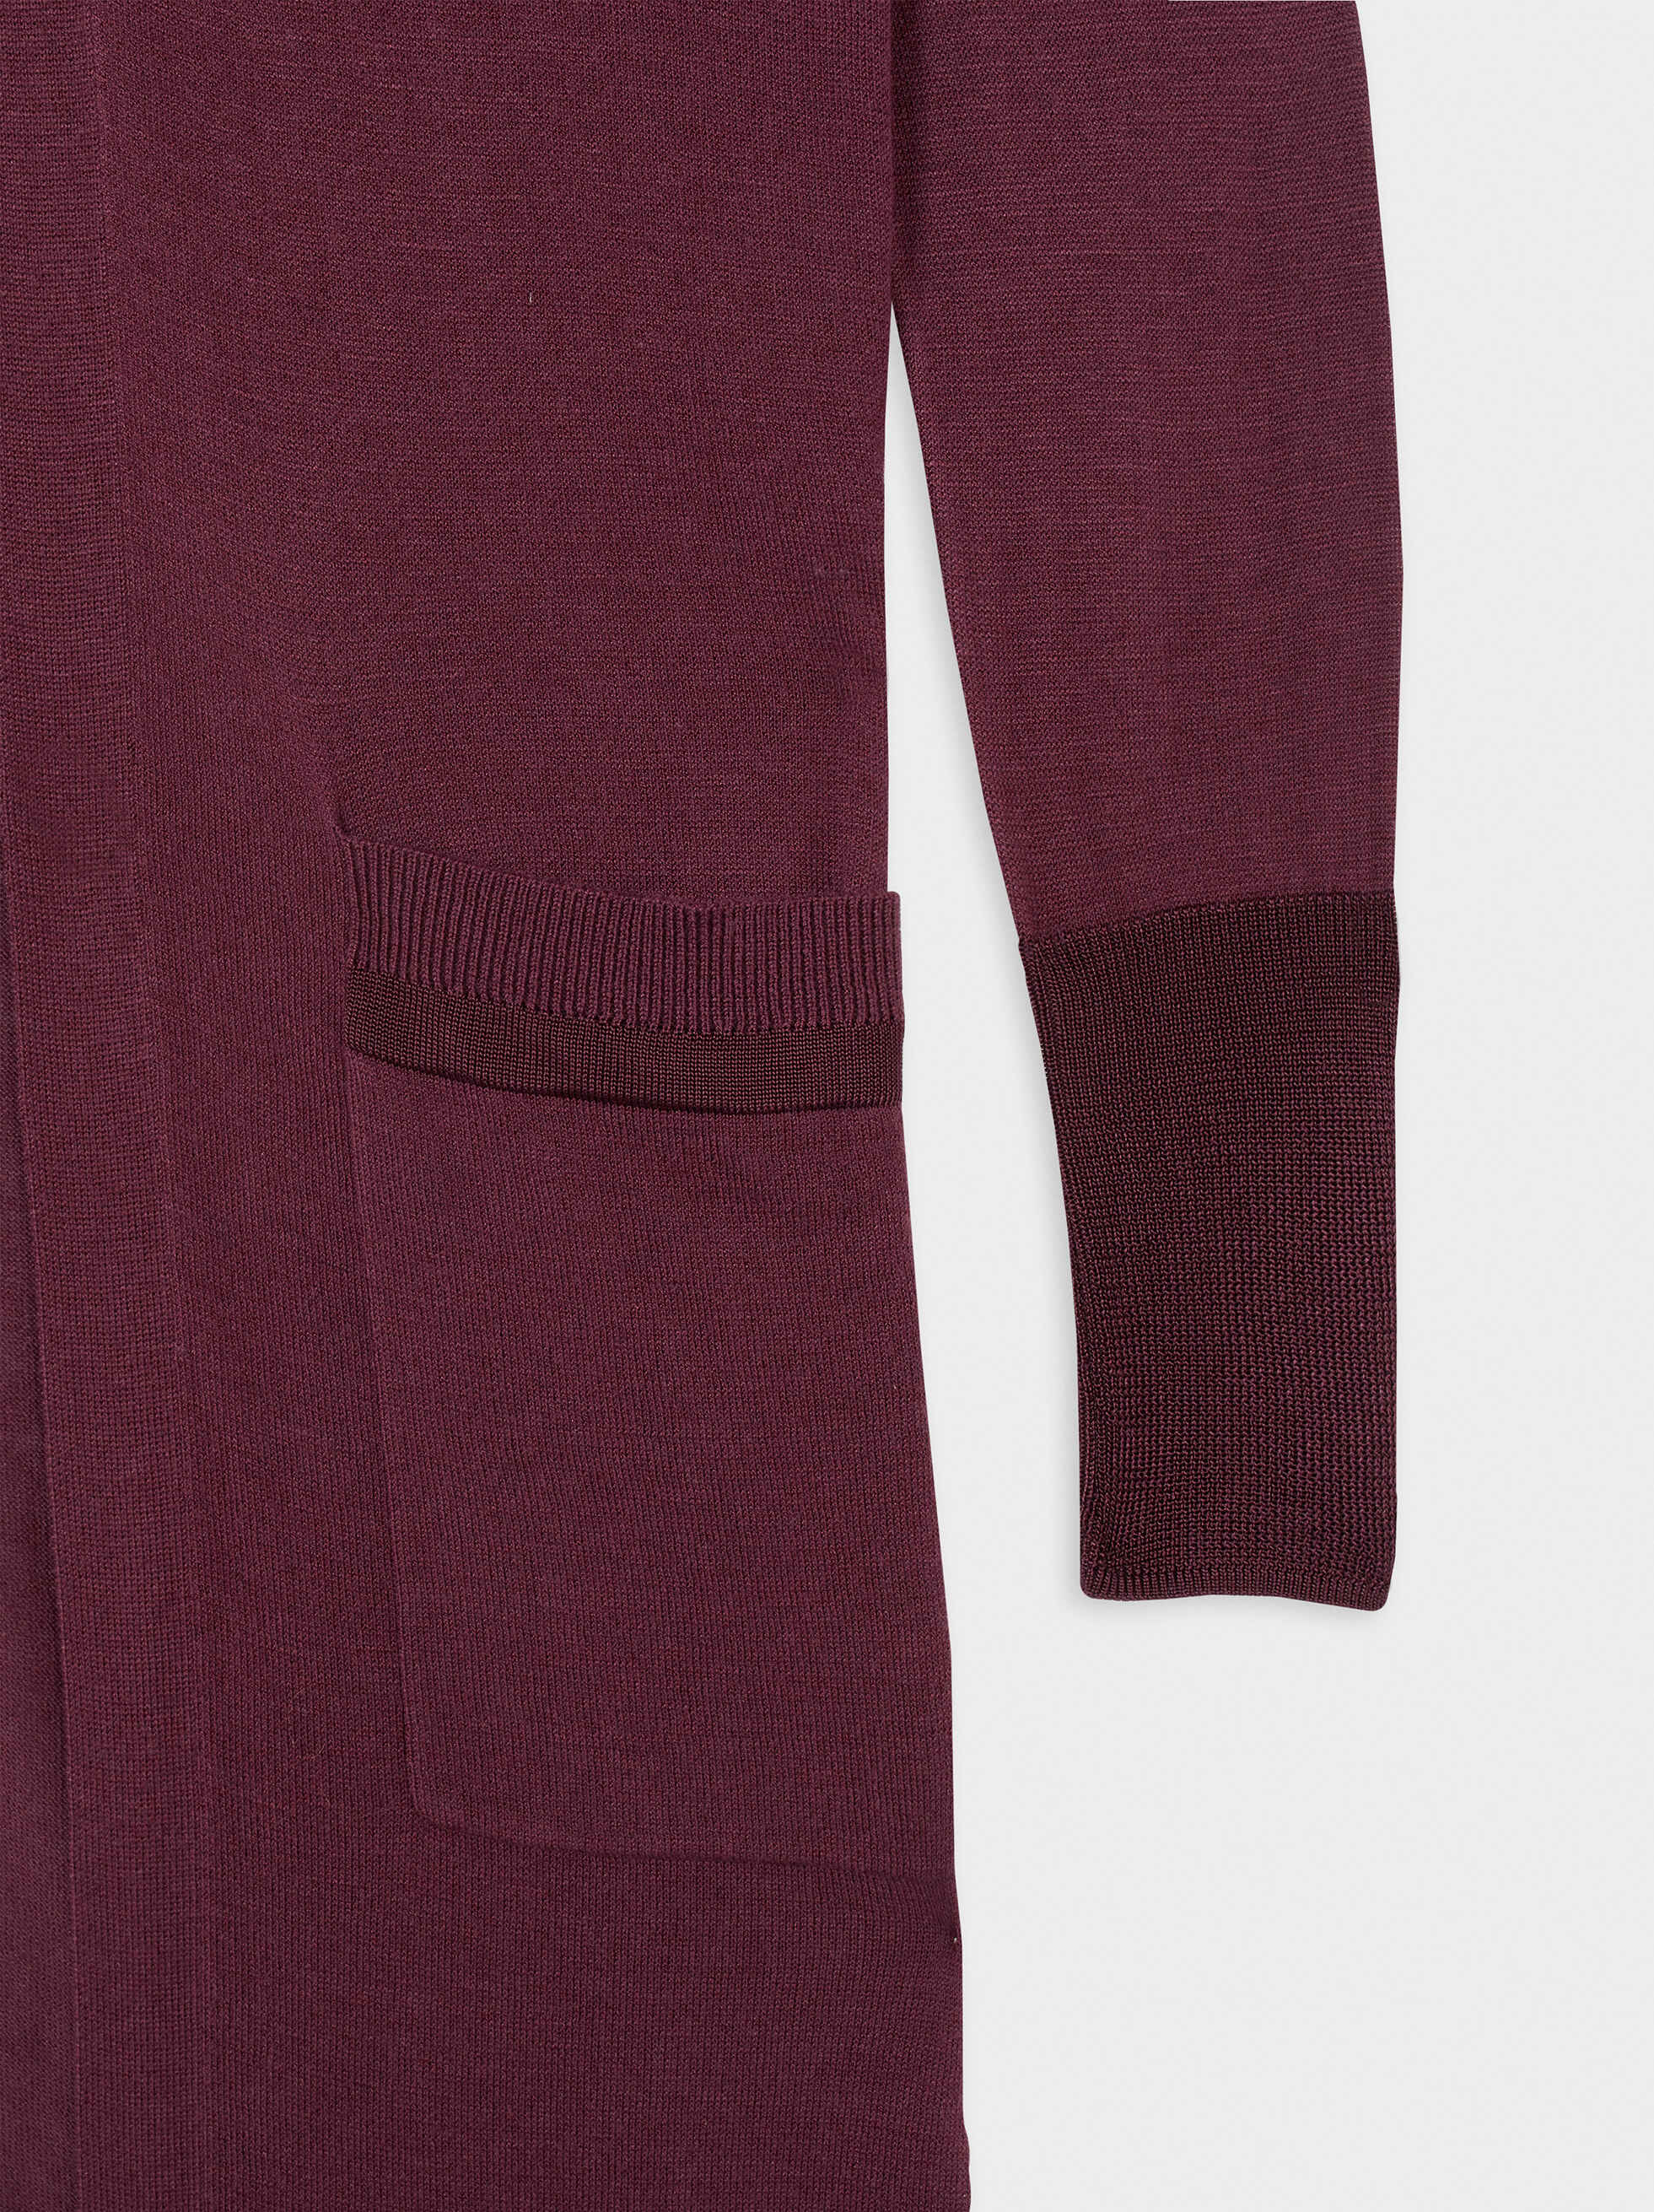 Long Knit Cardigan, Bordeaux, hi-res